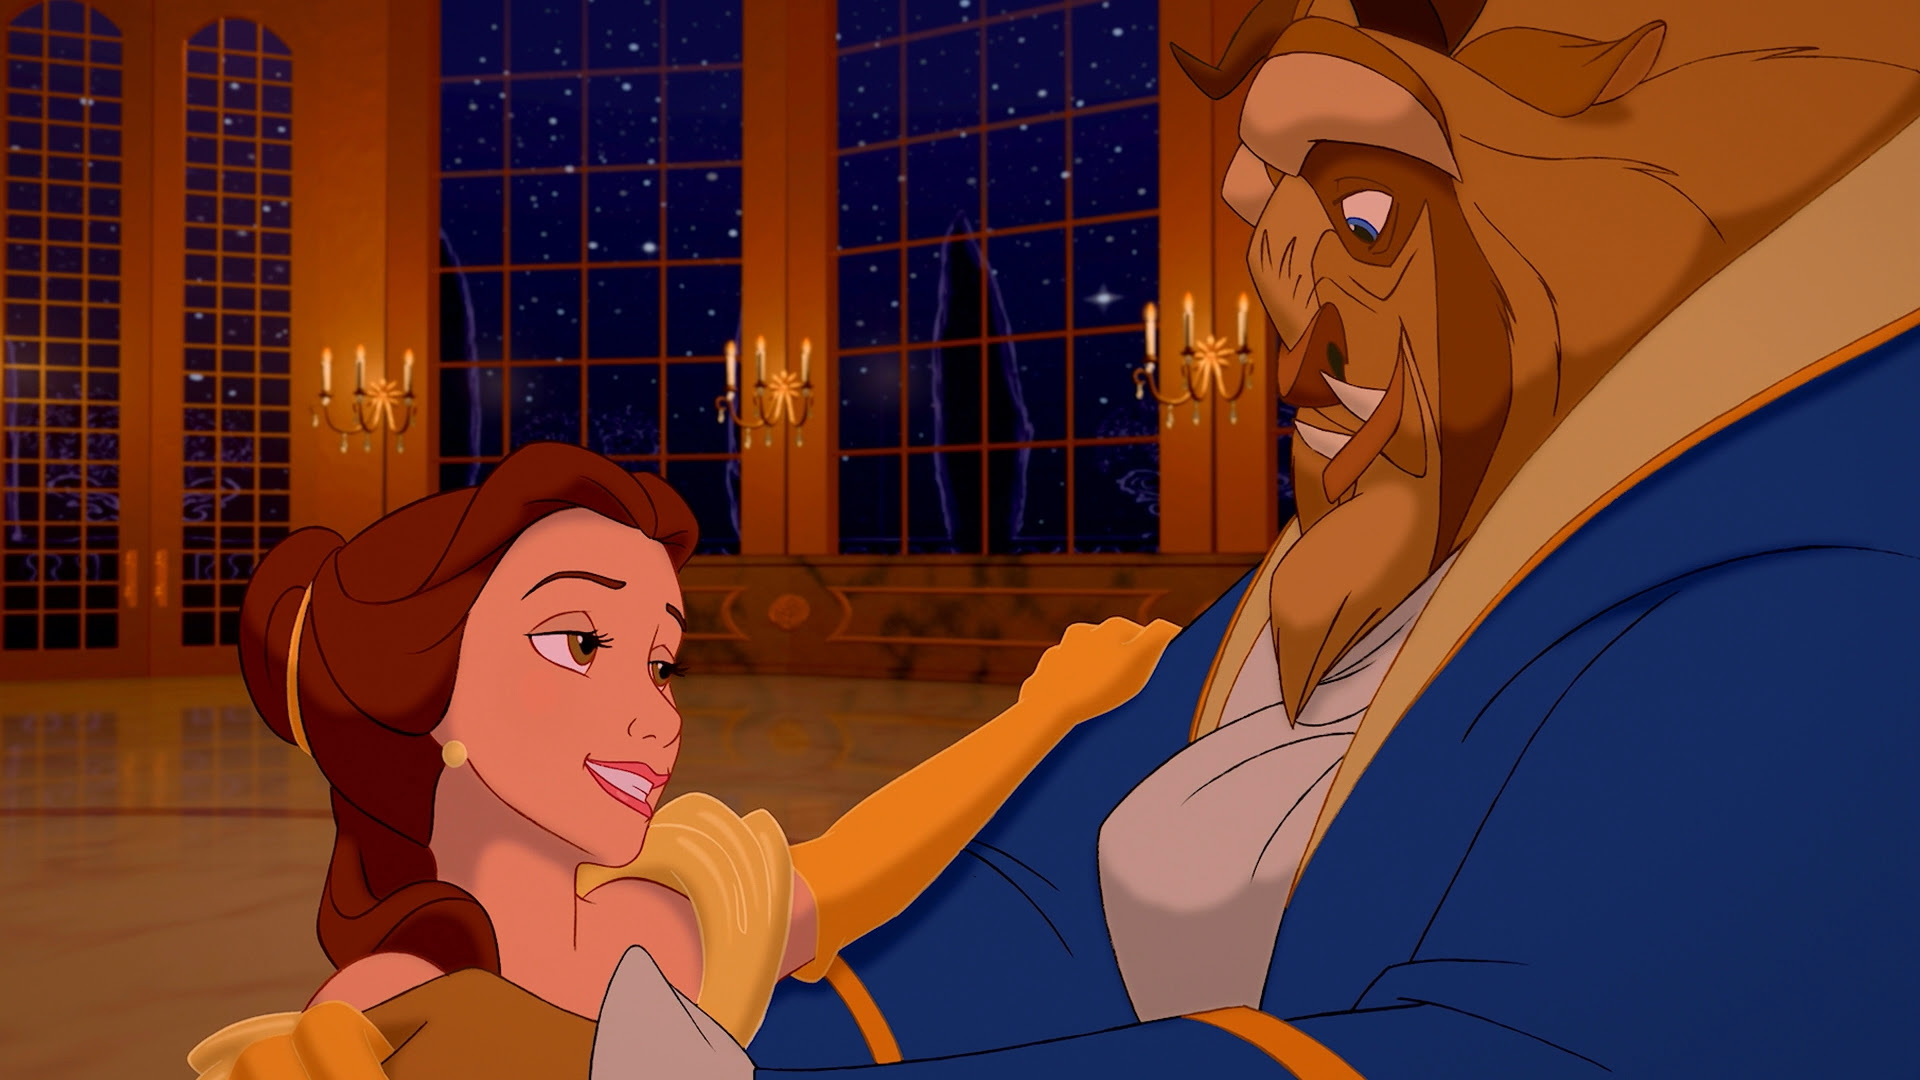 Movies Dancing Disney Beauty And The Beast Belle Disney 1920x1080